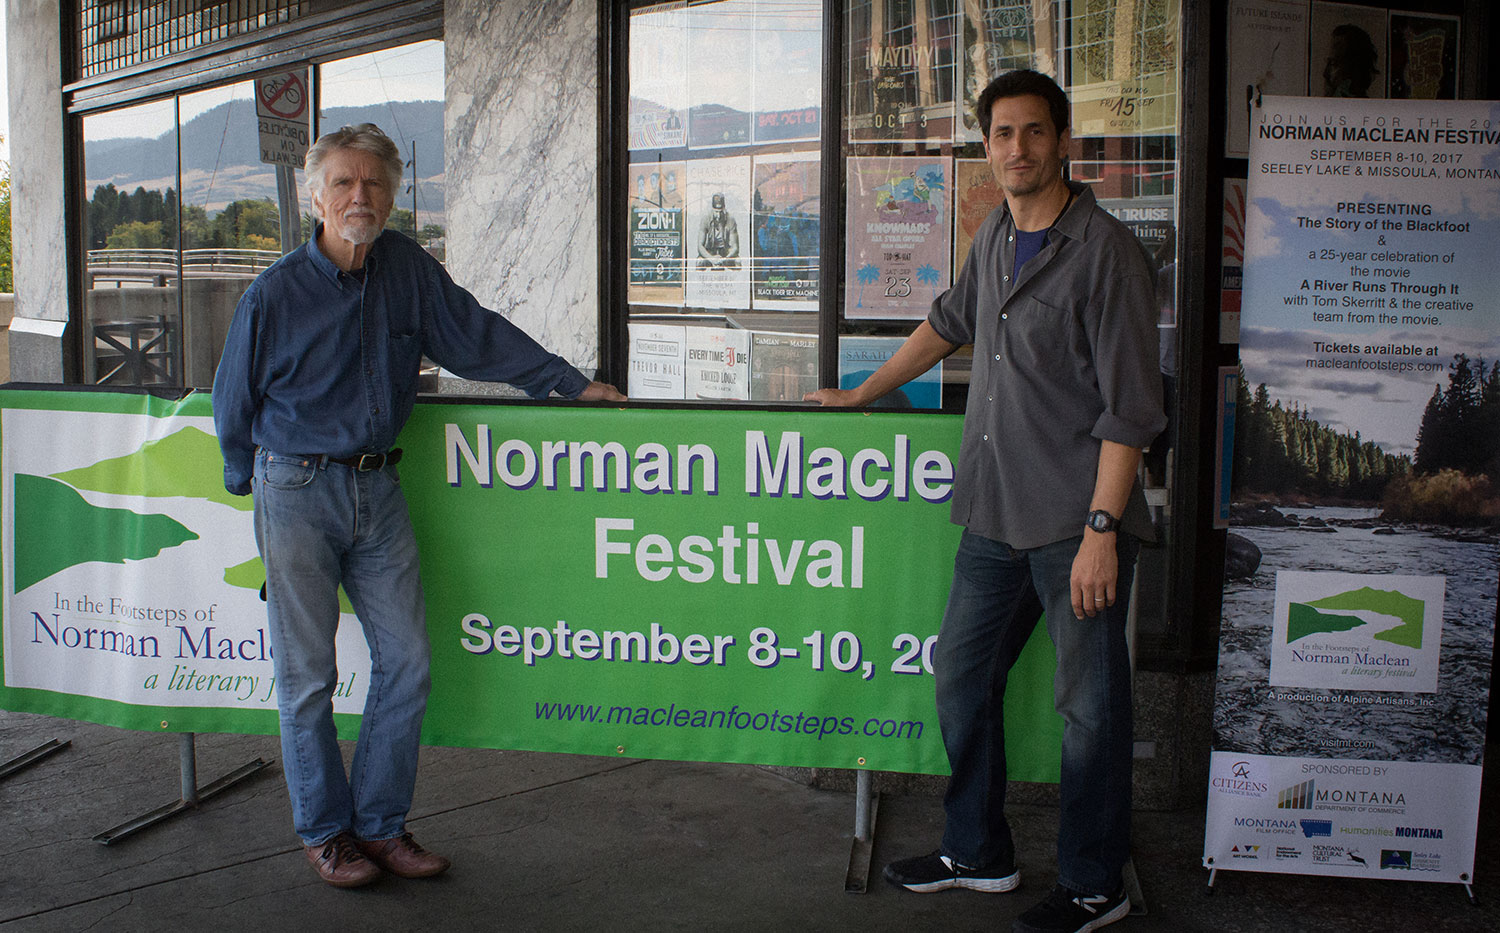 Actor Tom Skerritt and Norman Maclean's grandson, Jacob Snyder at the 2017 In The Footsteps of Norman Maclean Festival. Image: Chenoa Dwyer.